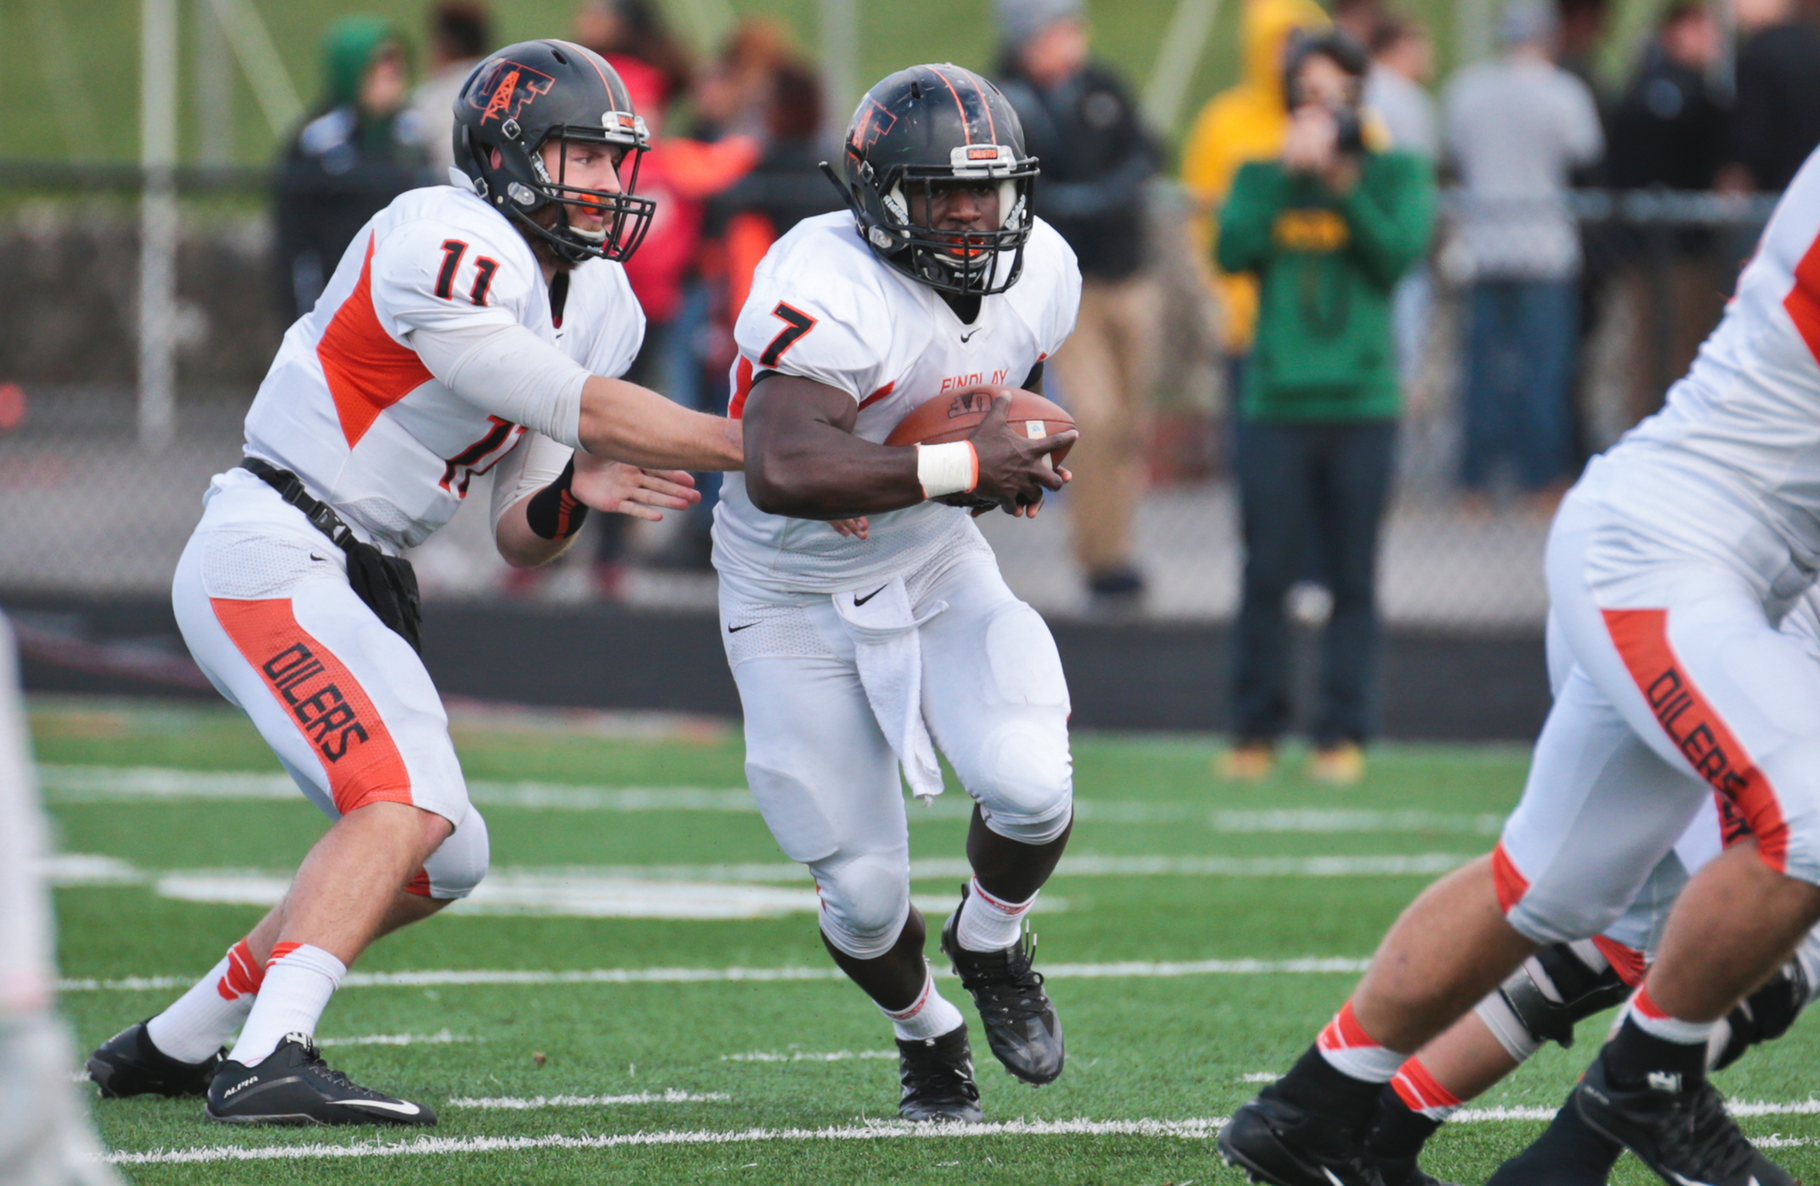 Oilers Roll in Houghton in Final GLIAC Game